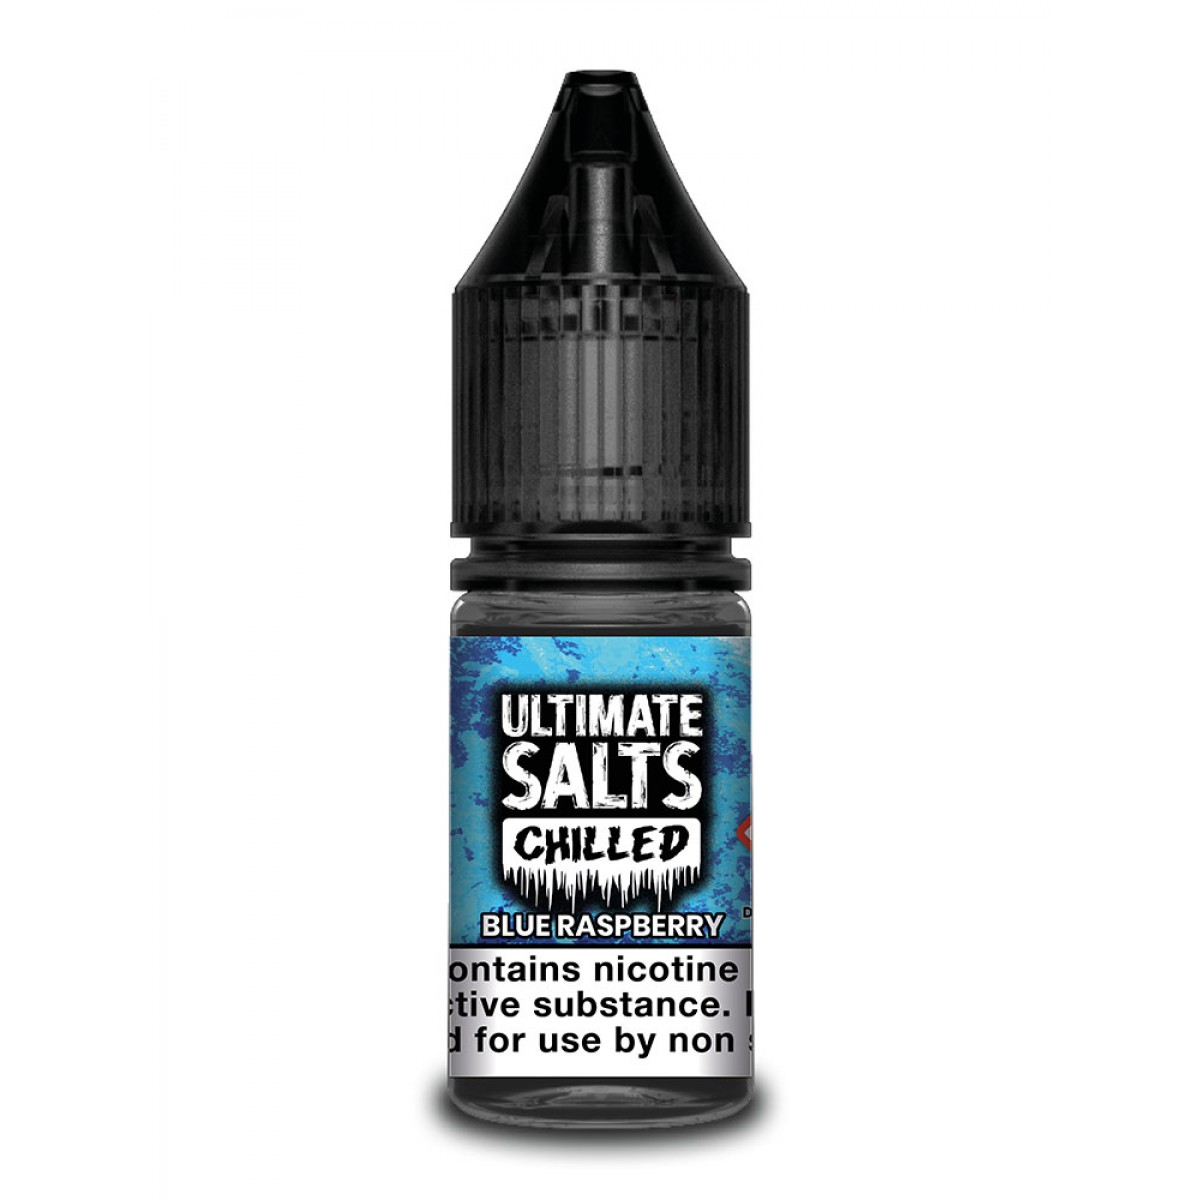 BLUE RASPBERRY BY ULTIMATE SALTS CHILLED